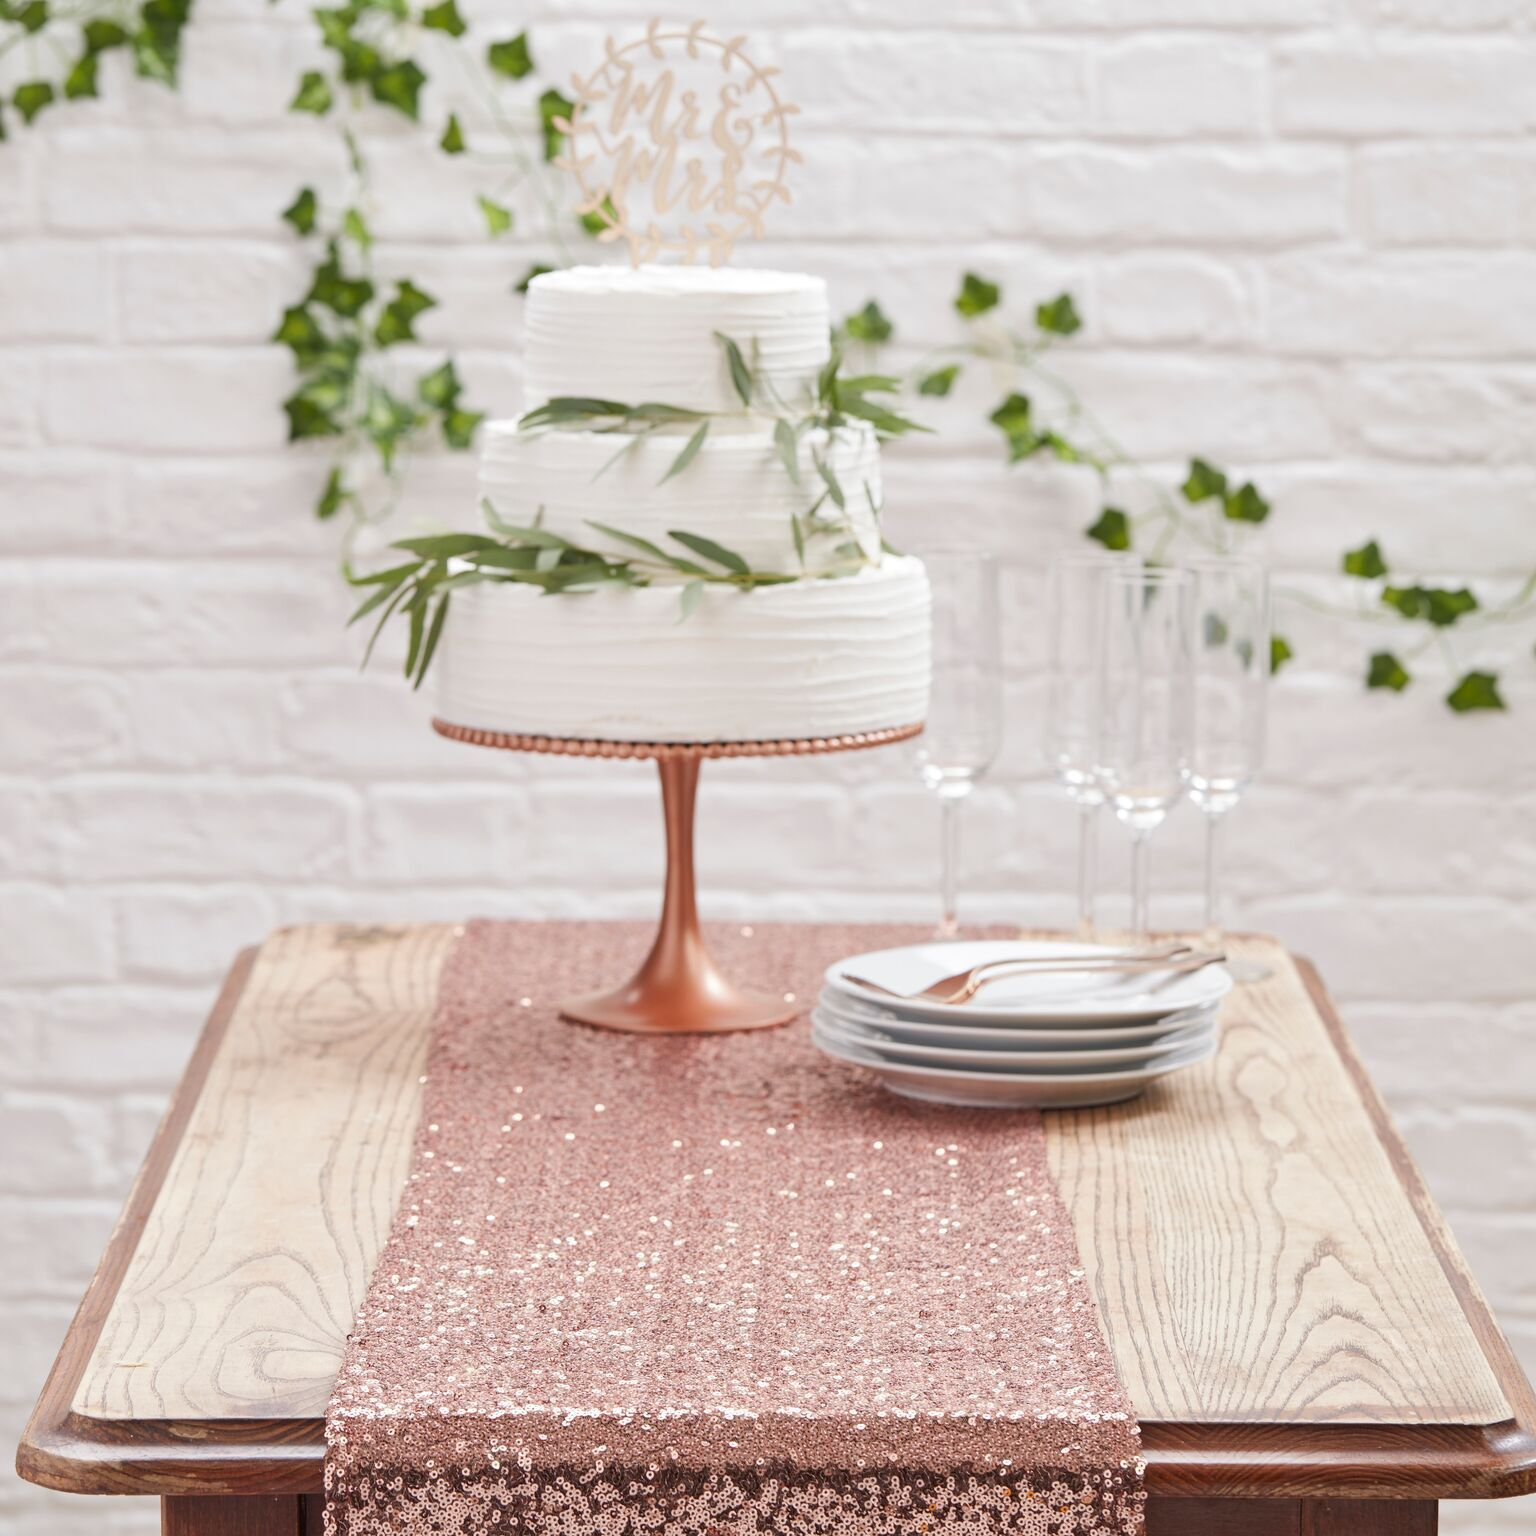 decoration table rose gold cuivre chemin table sequins